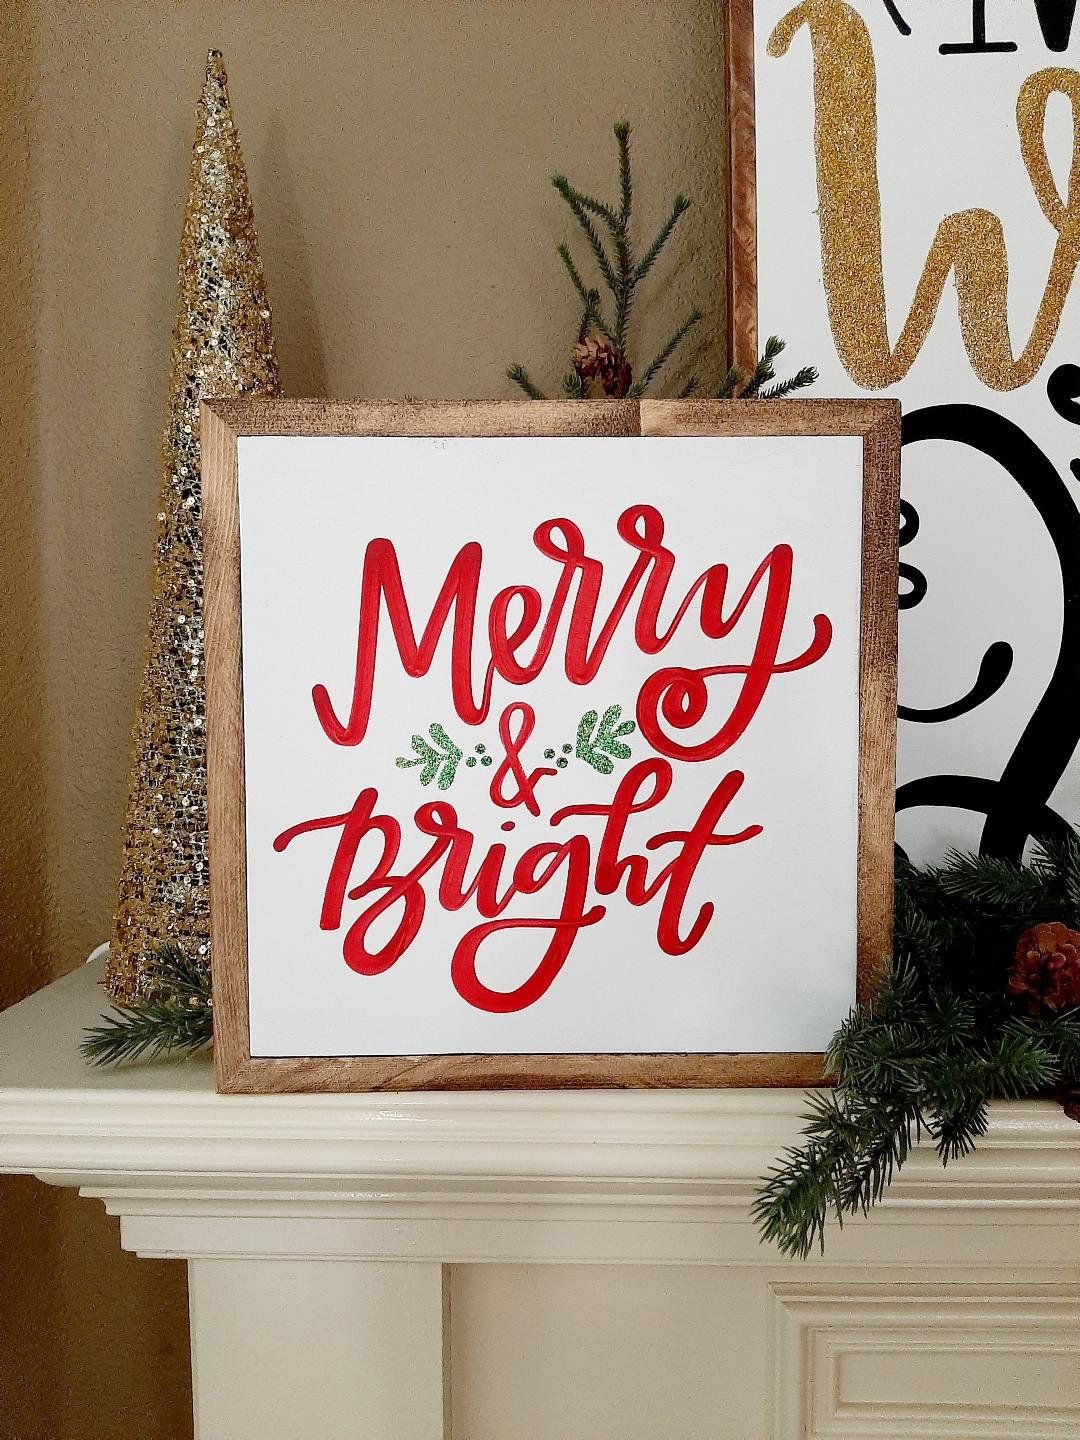 Merry Bright Wood Sign Wooden Signs Christmas Signs Christmas Wall Art Signs Glitter Holiday Decor Merry And Bright Framed Sign Christmas Wall Art Christmas Signs Wooden Signs